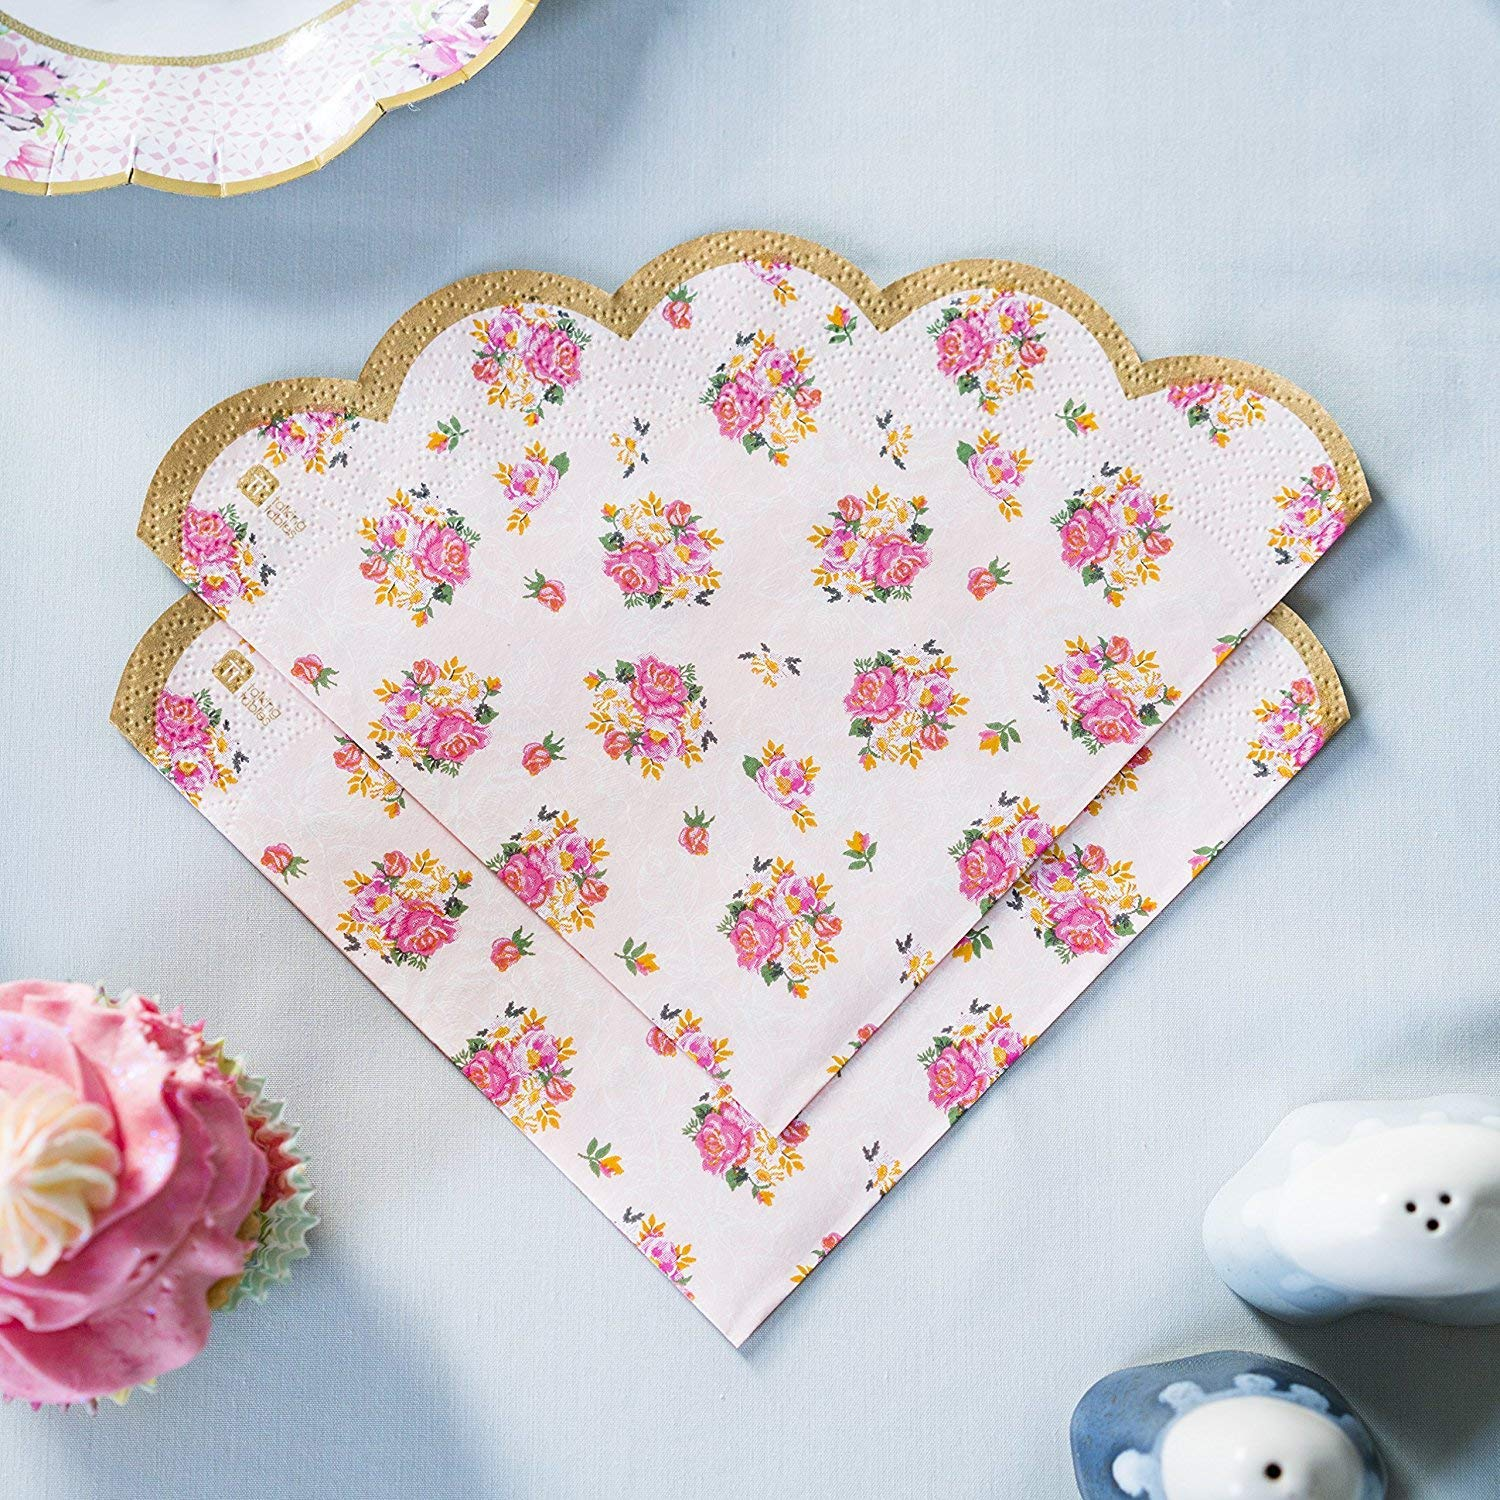 Talking Tables Vintage Floral Tea Party Supplies | Scalloped Paper Plates, Napkins, Tea Cups and Saucer Sets | Also Great for Wedding Parties, Bridal Shower, Baby Shower and Birthday Party by Talking Tables (Image #6)